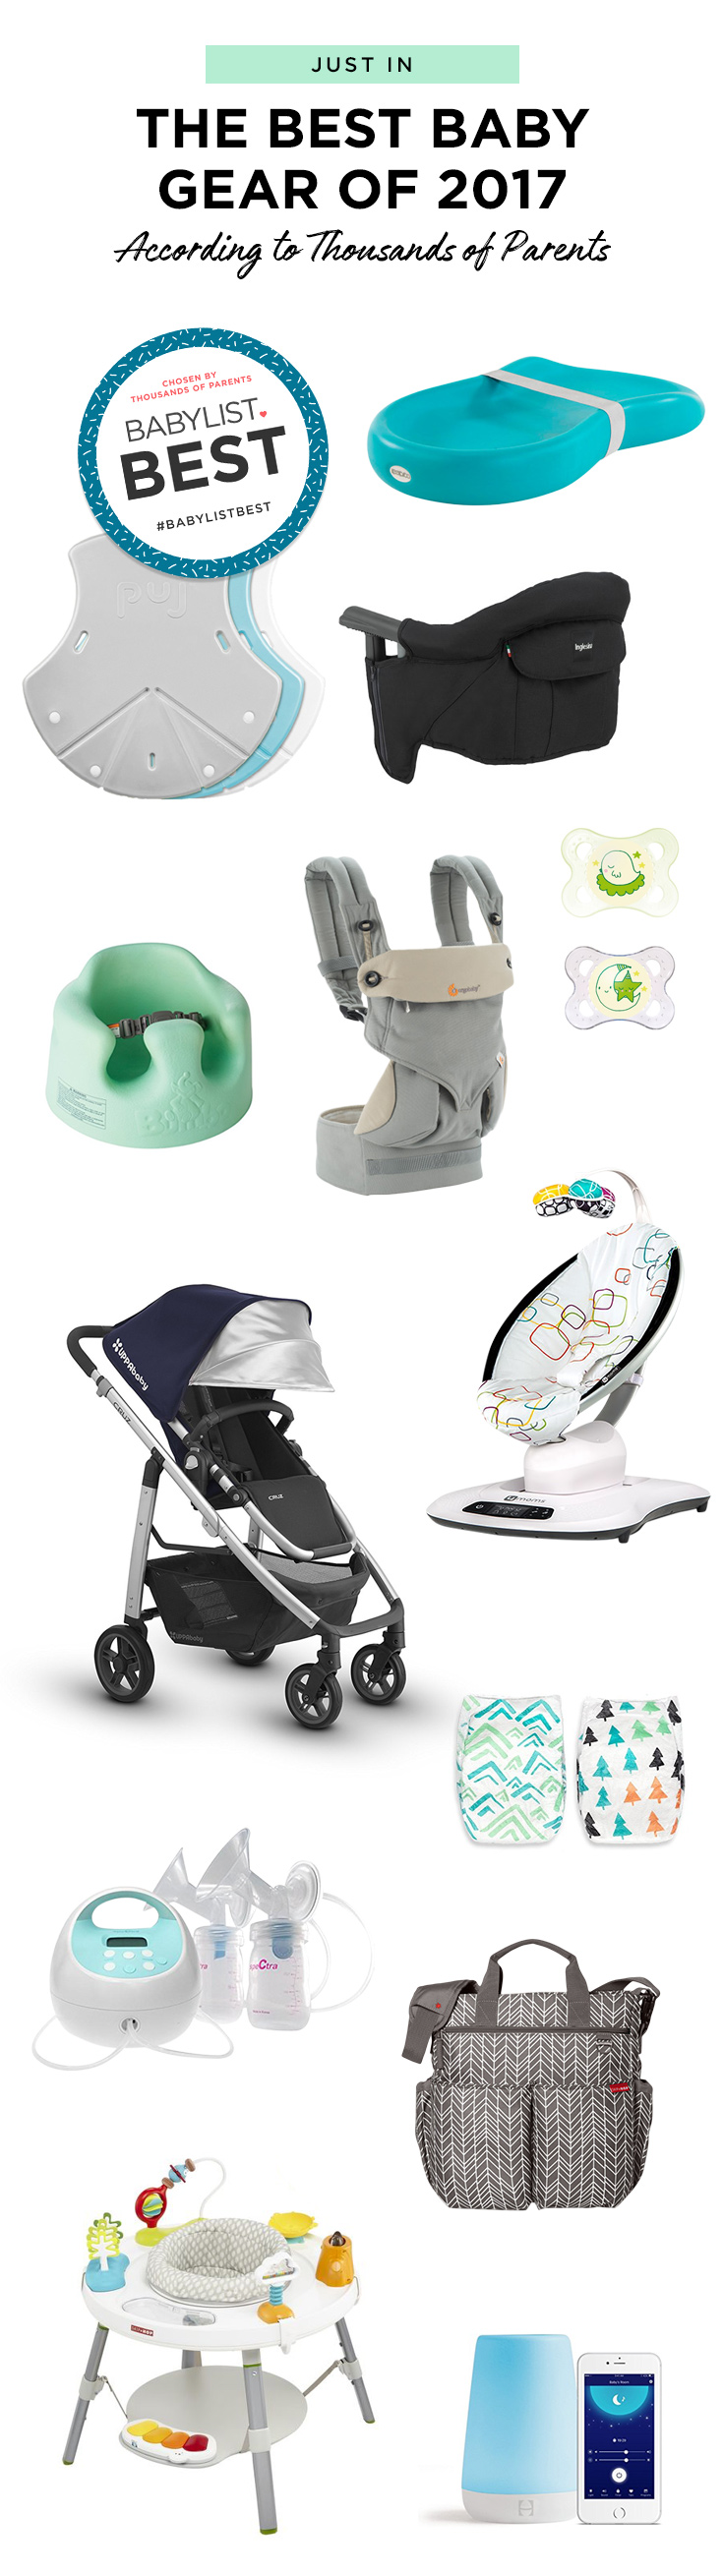 Cool Baby Gadgets 2017